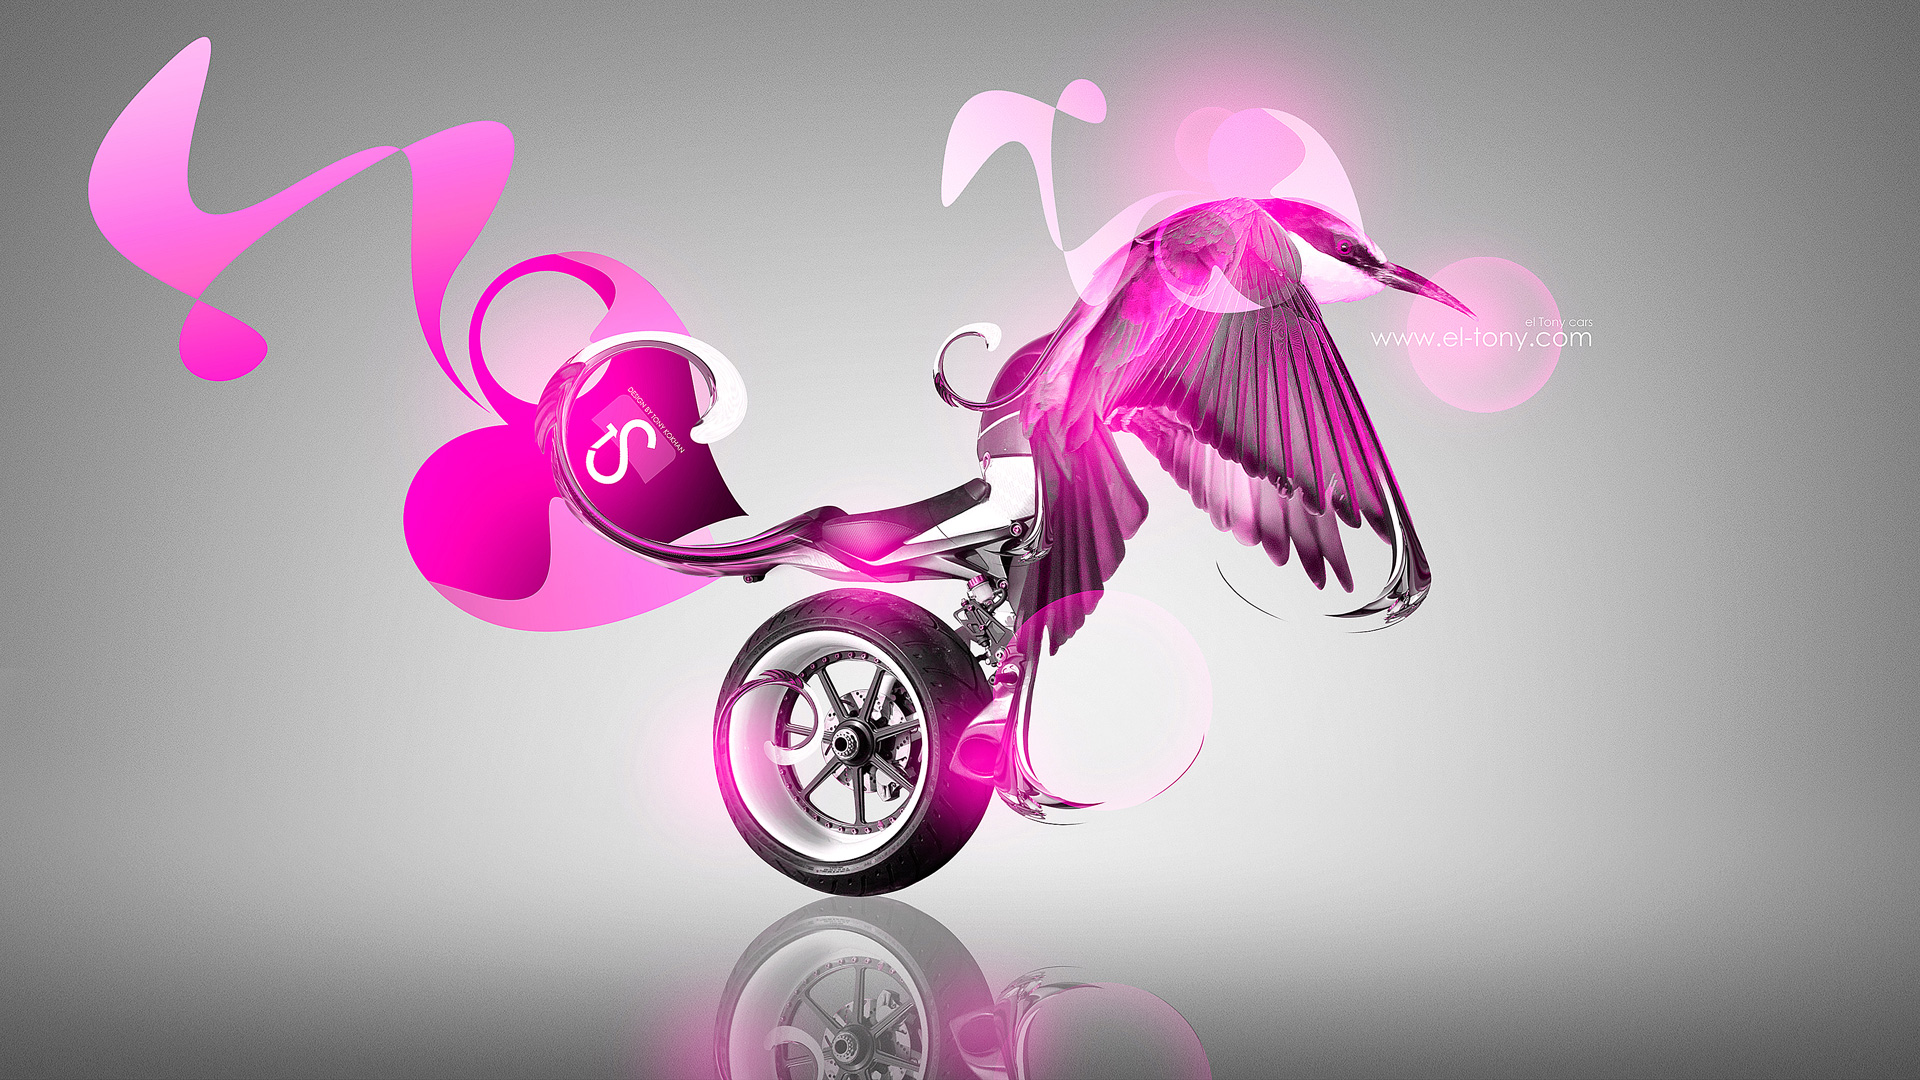 Captivating Moto Colibri Bike 2014 HD Wallpapers Design By